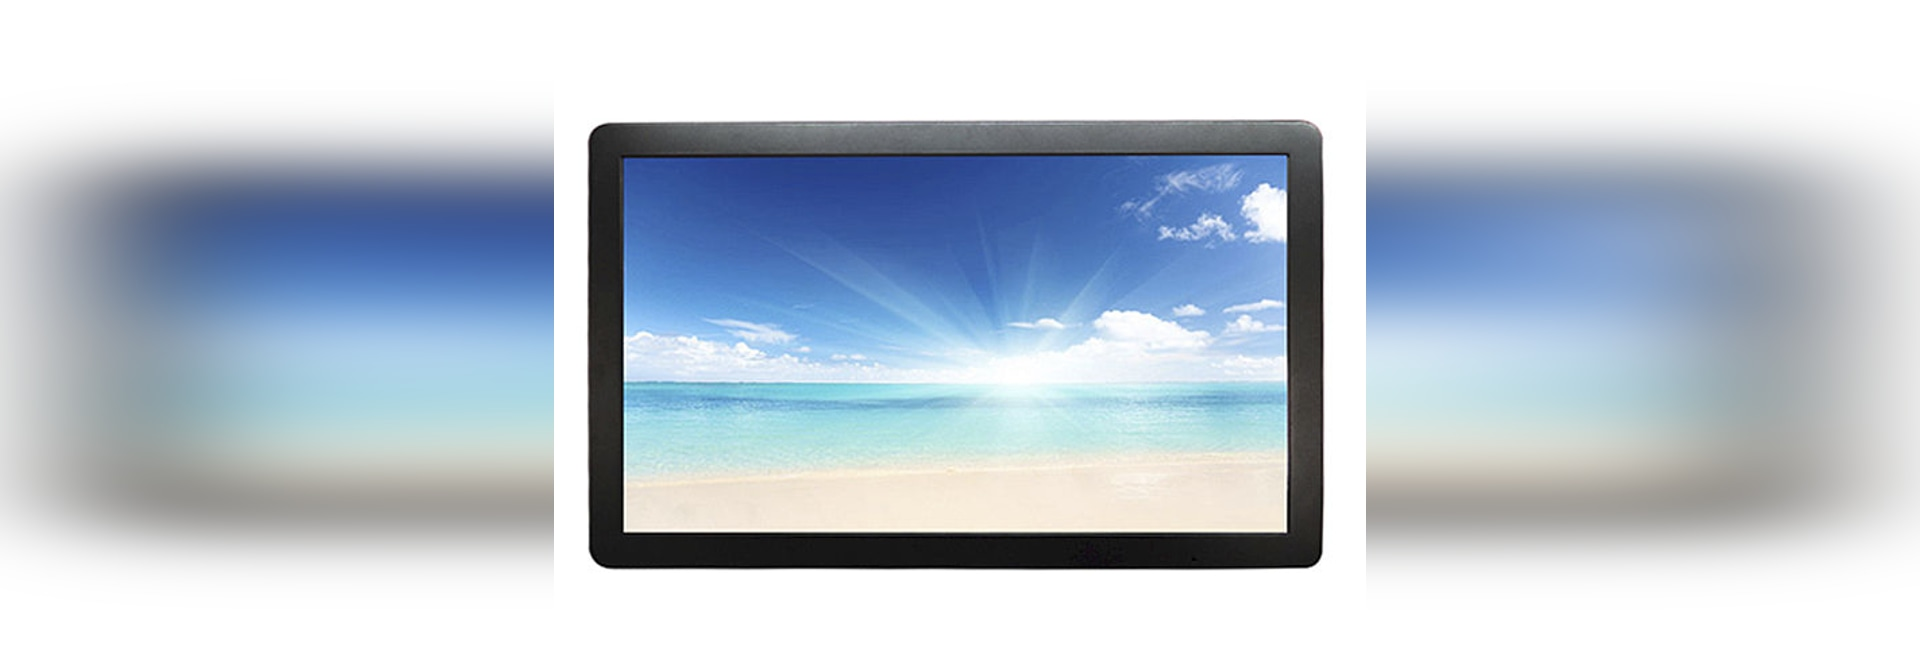 215inch Android Os Industrial Touchscreen Monitor Amongo Display Touch Screen Technology Working